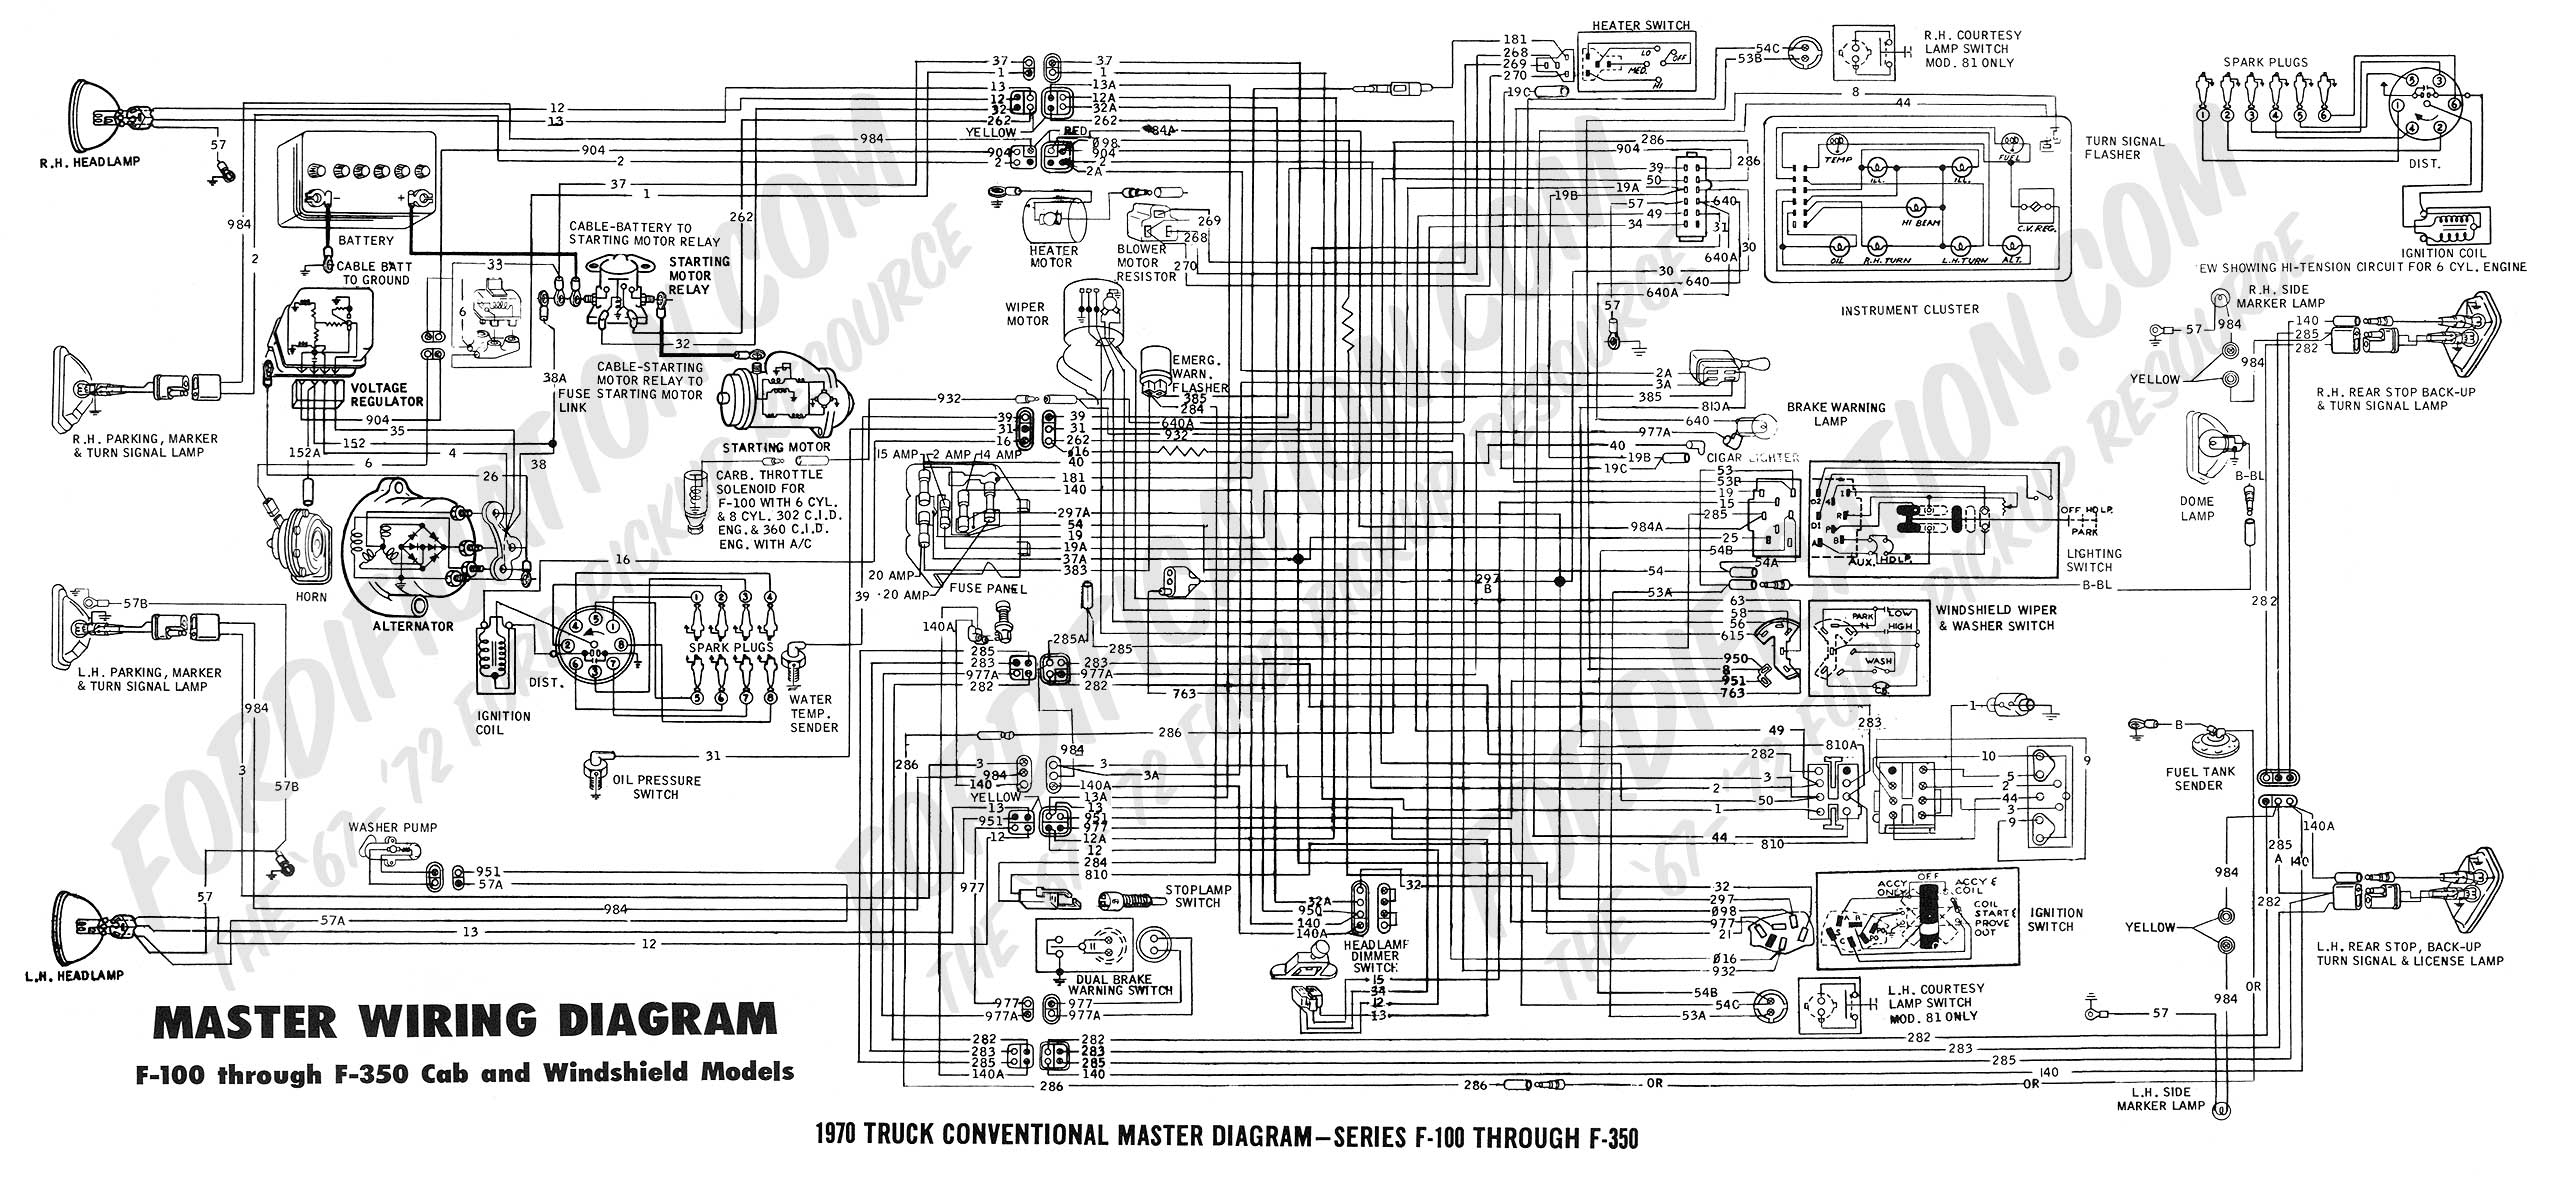 F350 Wiring Diagram Trailer